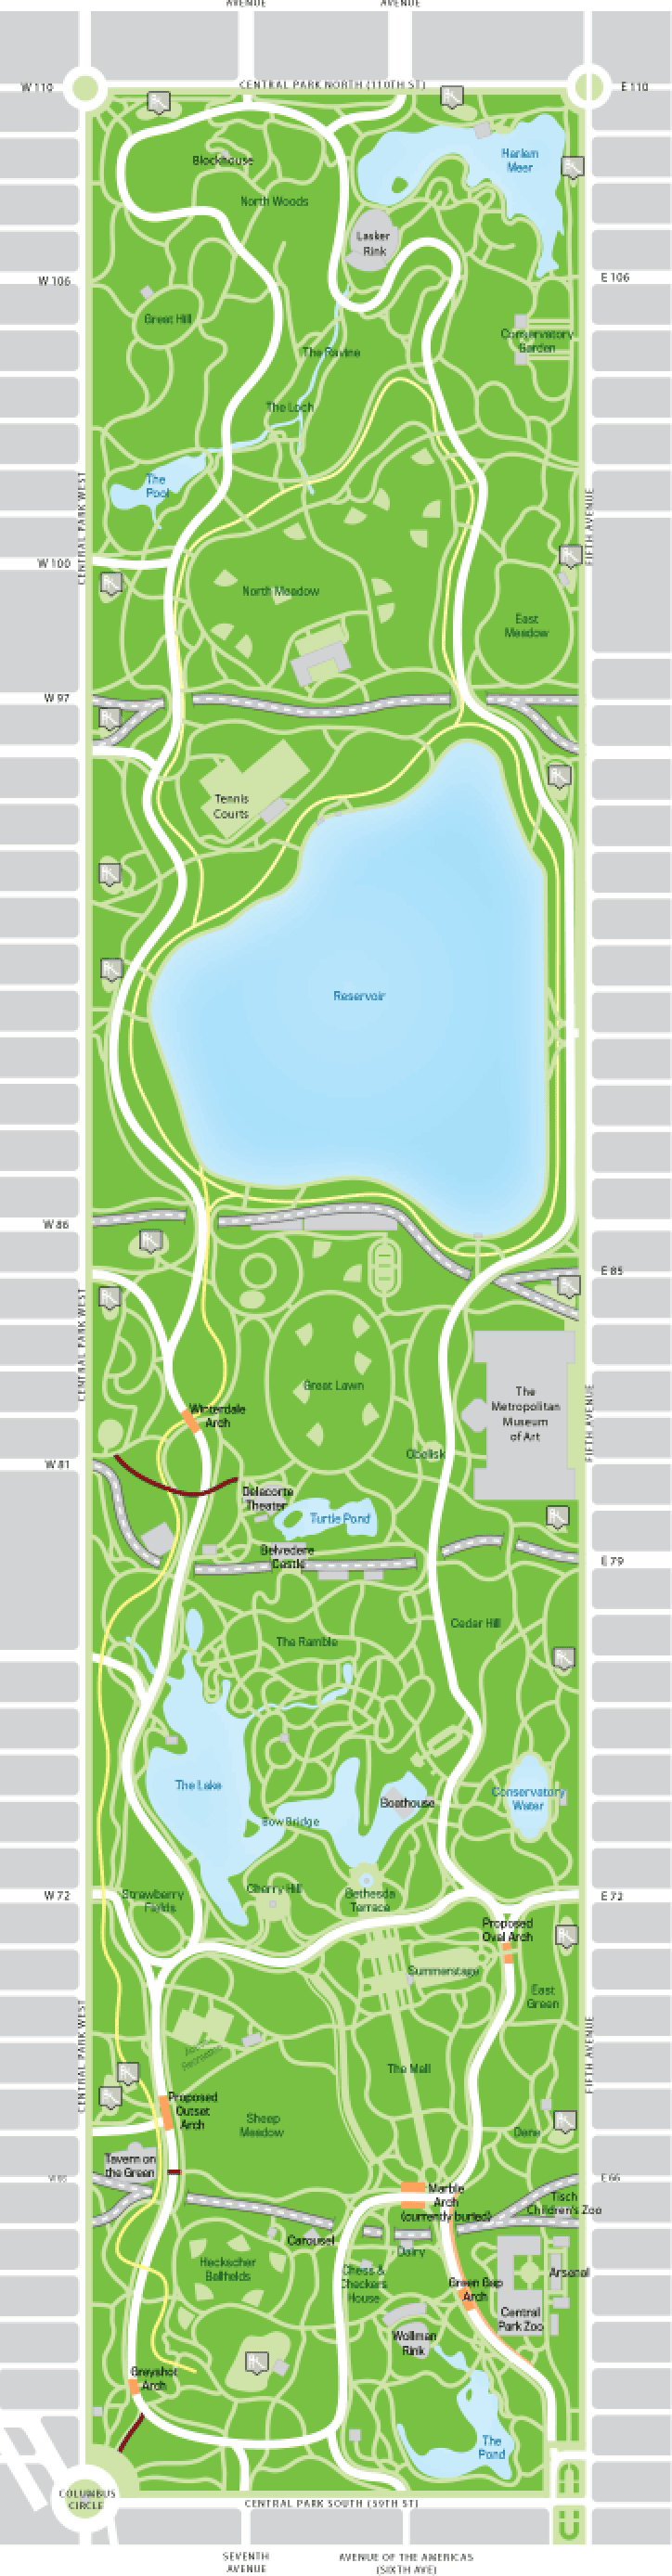 Proposed Central Park Map